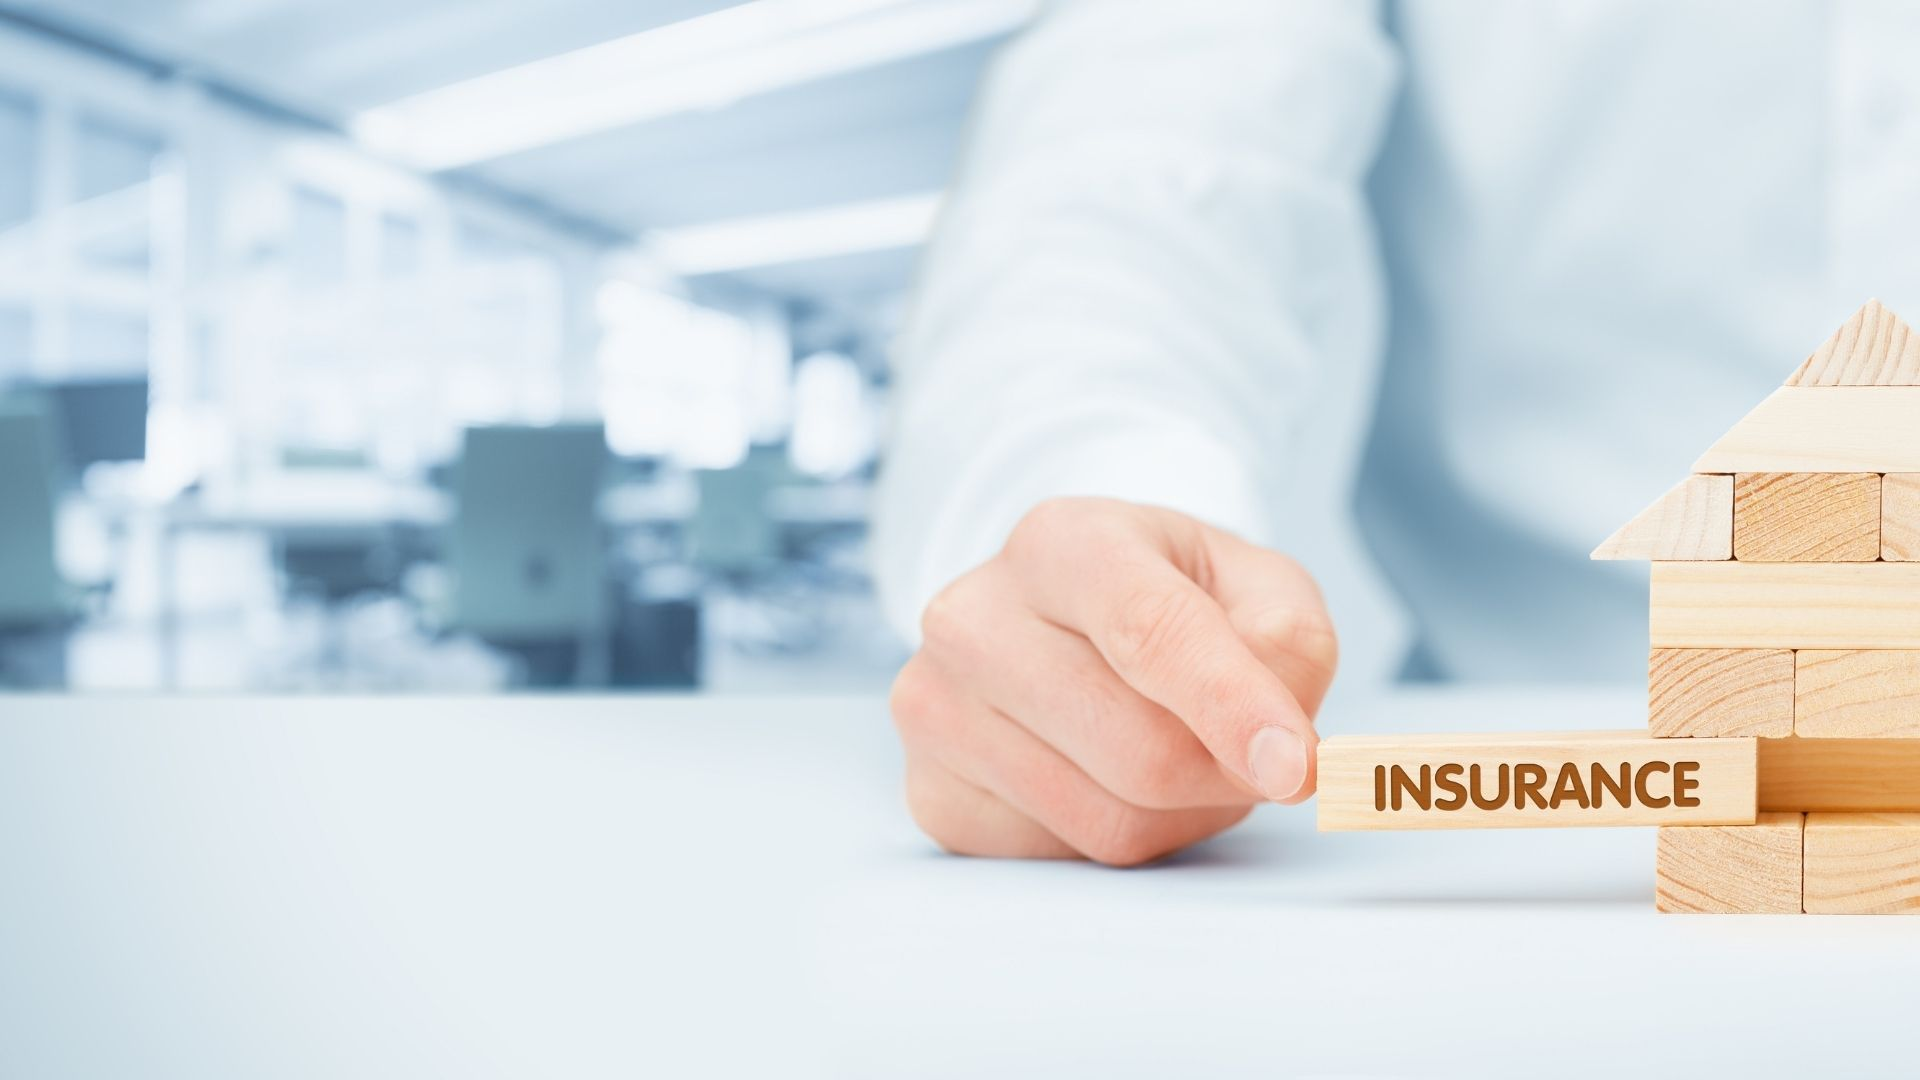 Why You Should Carry More Than the Minimum Liability Insurance for Your Business